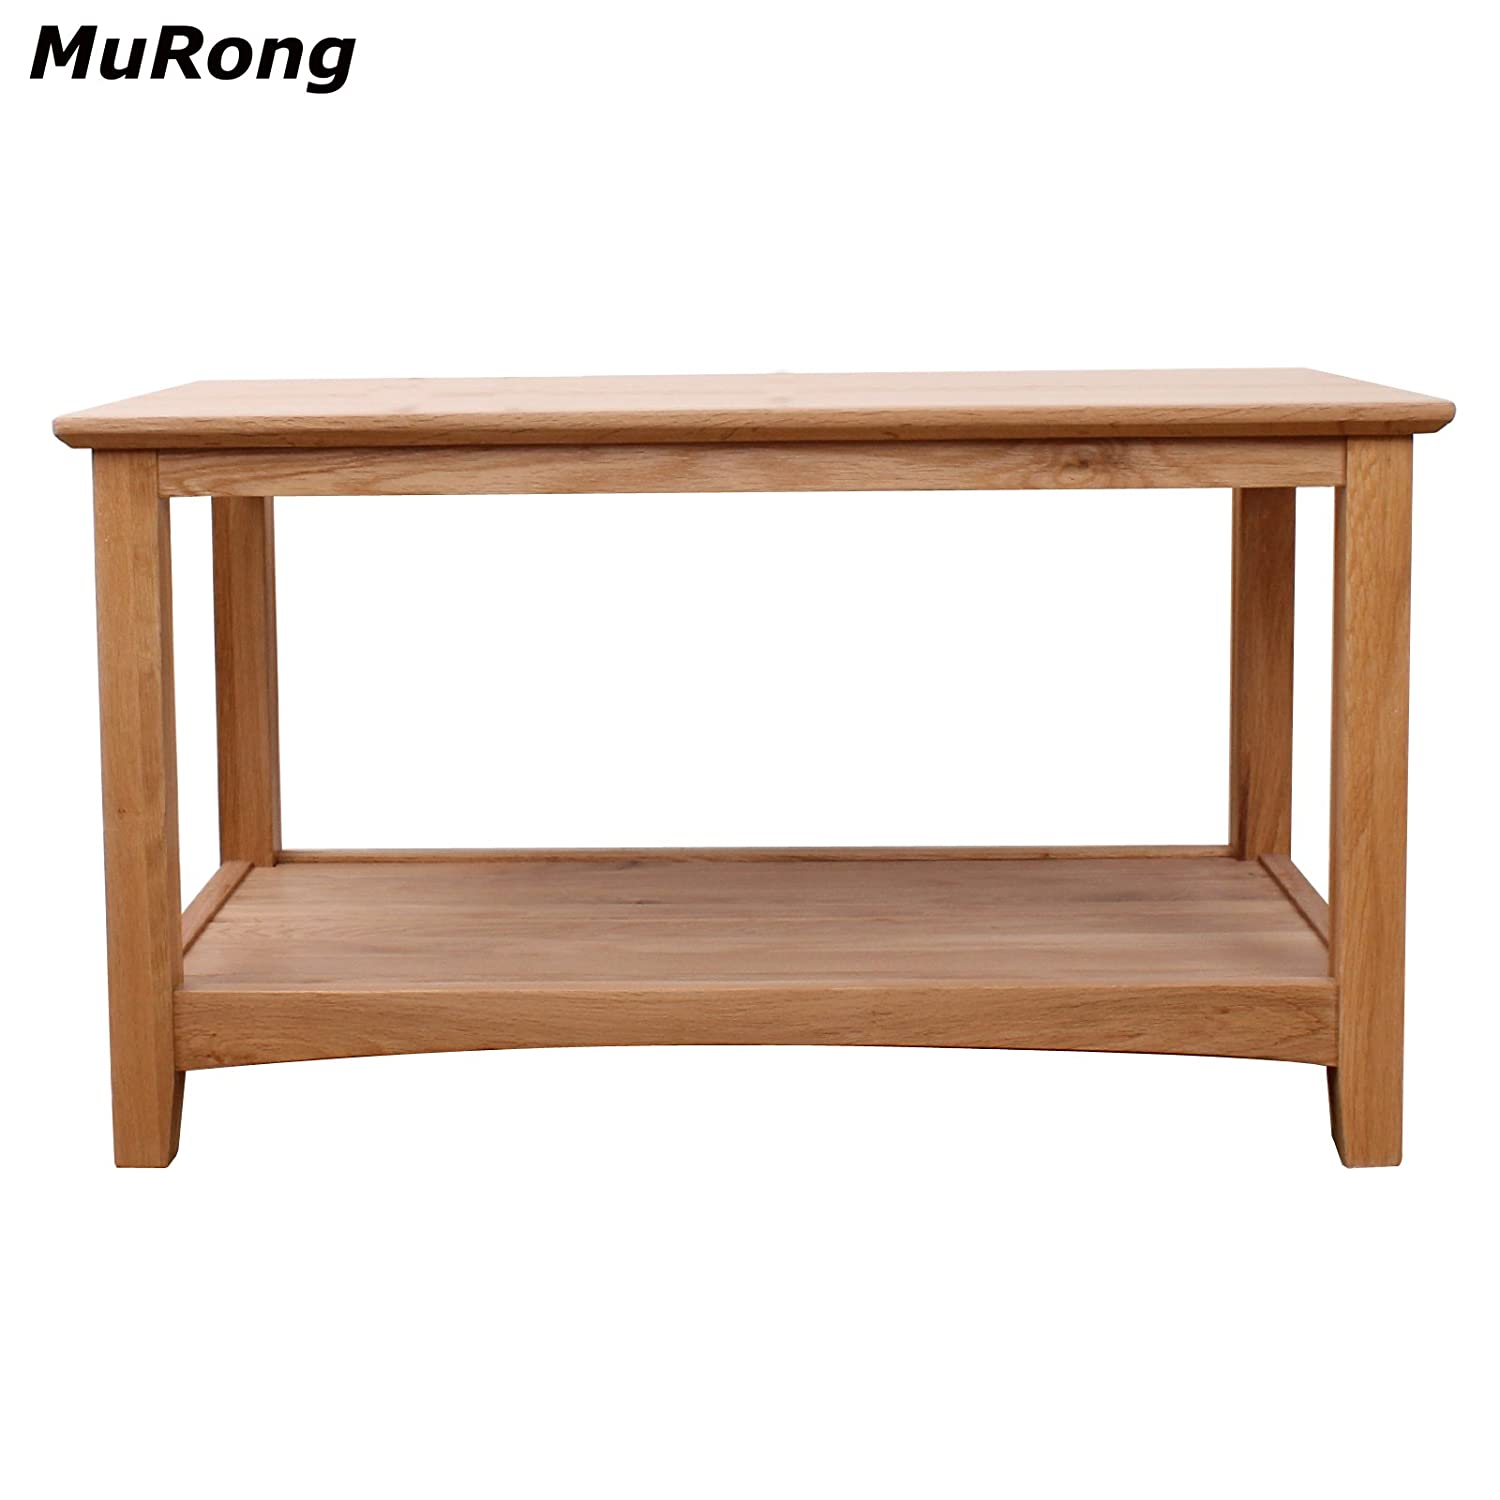 100% Solid oak Coffee Table with Storage Shelf NO VENEER NO MDF MURONG